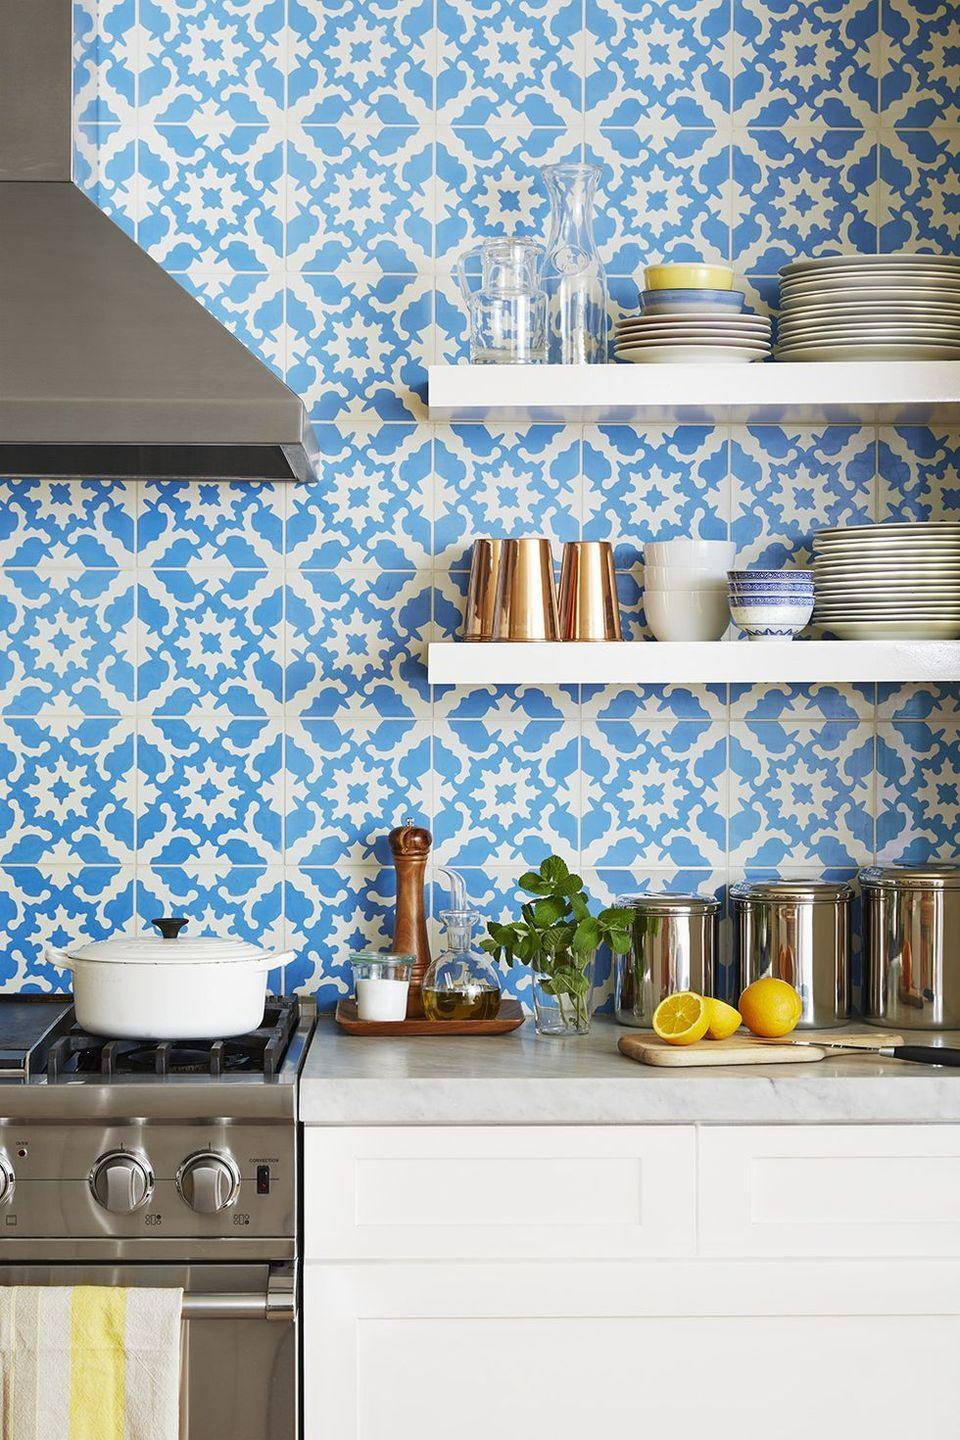 <p>A playful backsplash pattern, boasting a blue-and-white palette, steals the show in this kitchen.</p>